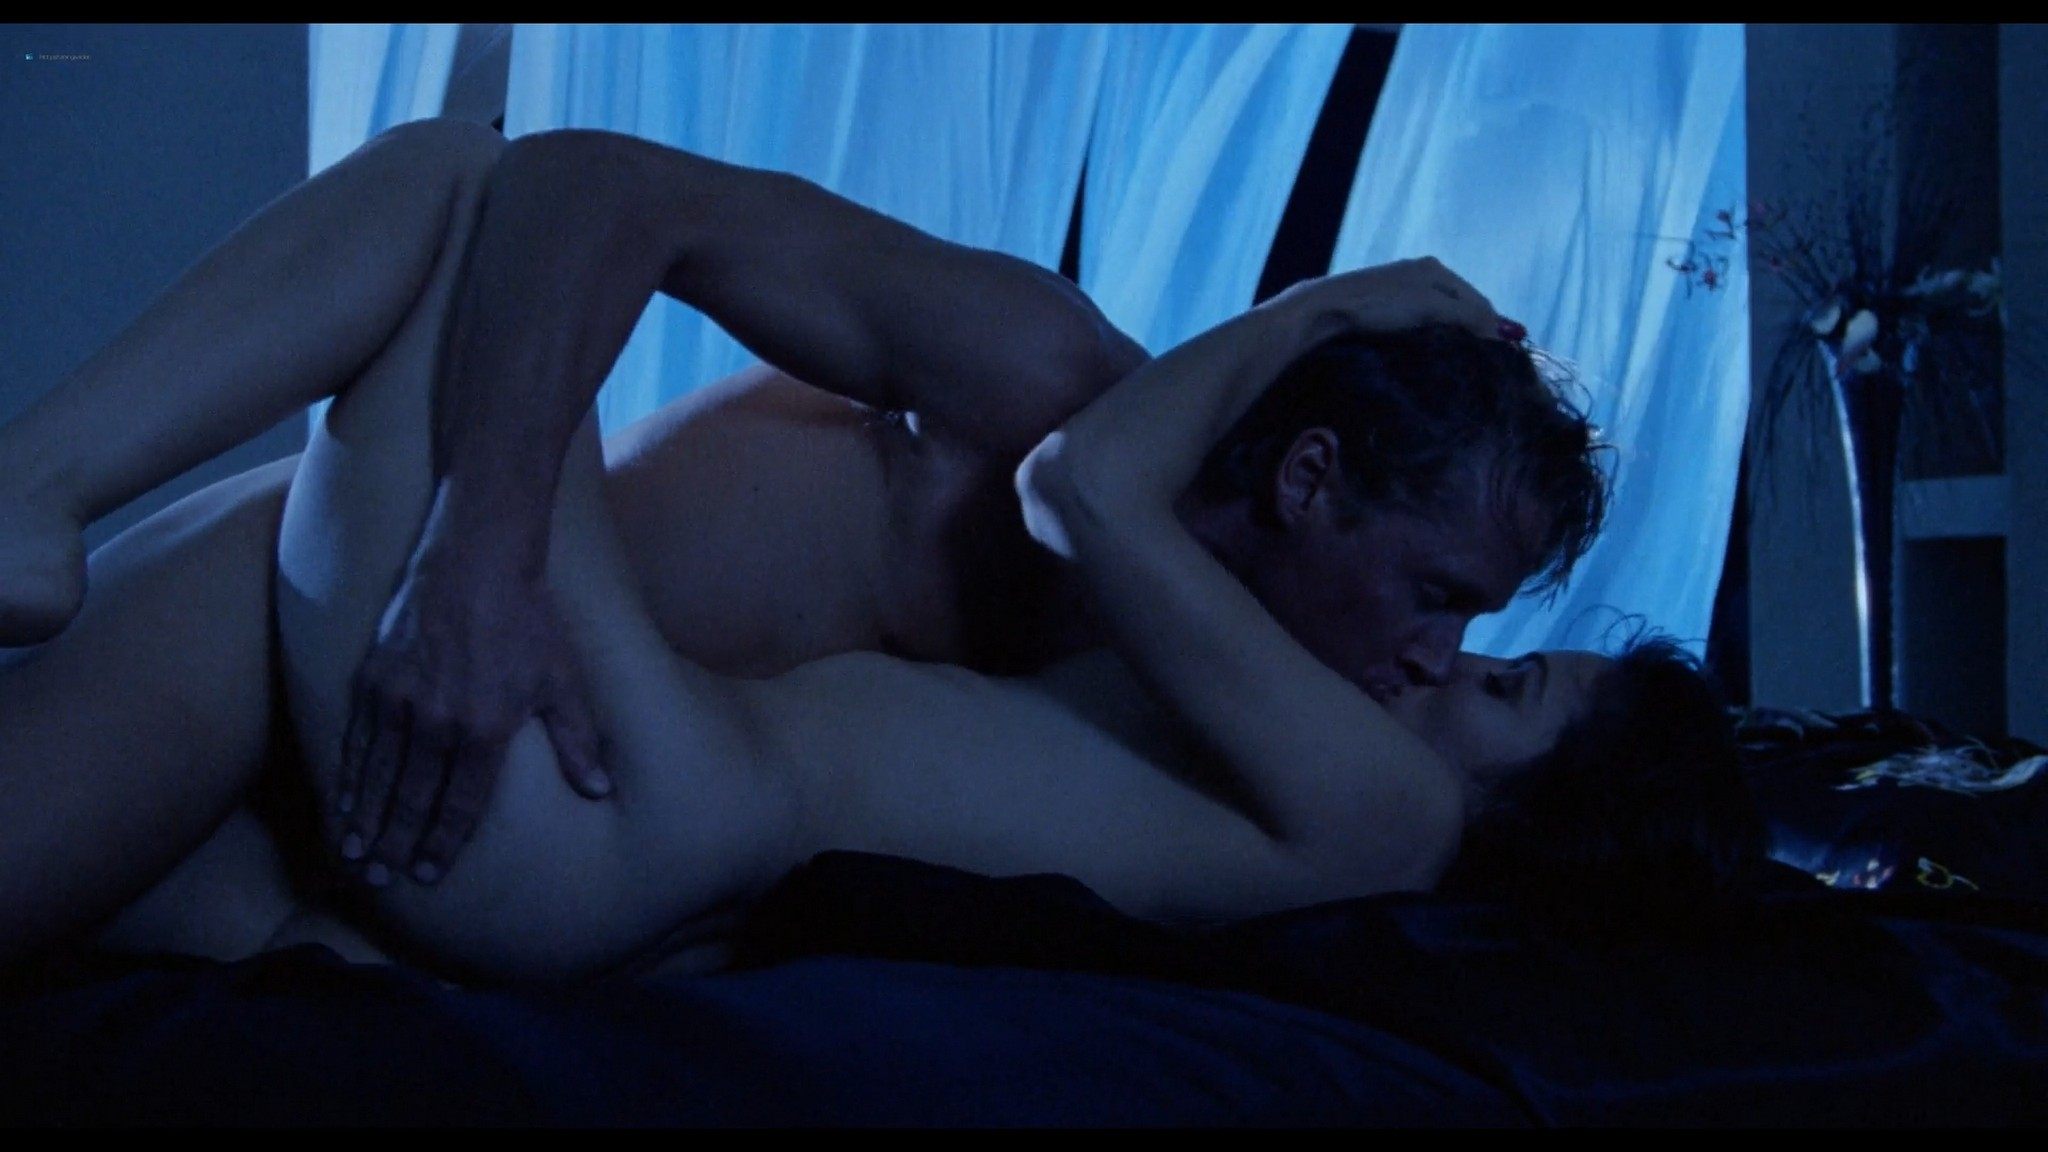 Shannon Tweed nude sex Adrienne Sachs nude sex in the shower In the Cold of the Night 1989 1080p BluRay 14